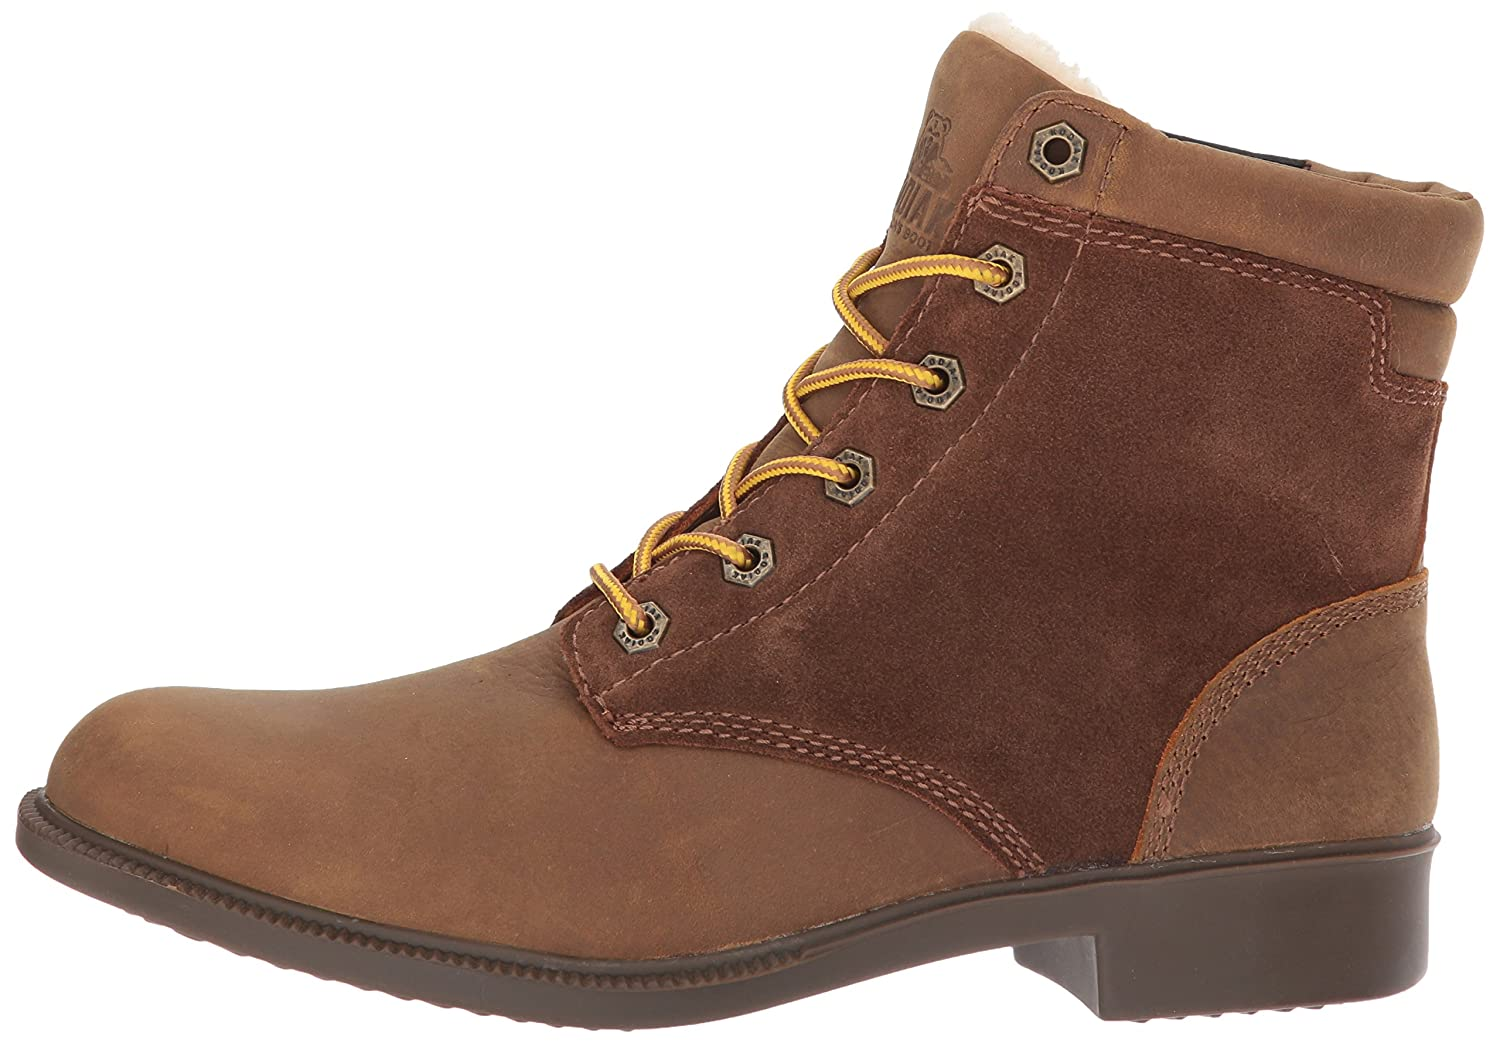 Kodiak Women's Original Fleece Ankle US|Wheat Boot B072BGQPX7 11 B(M) US|Wheat Ankle cca2c8